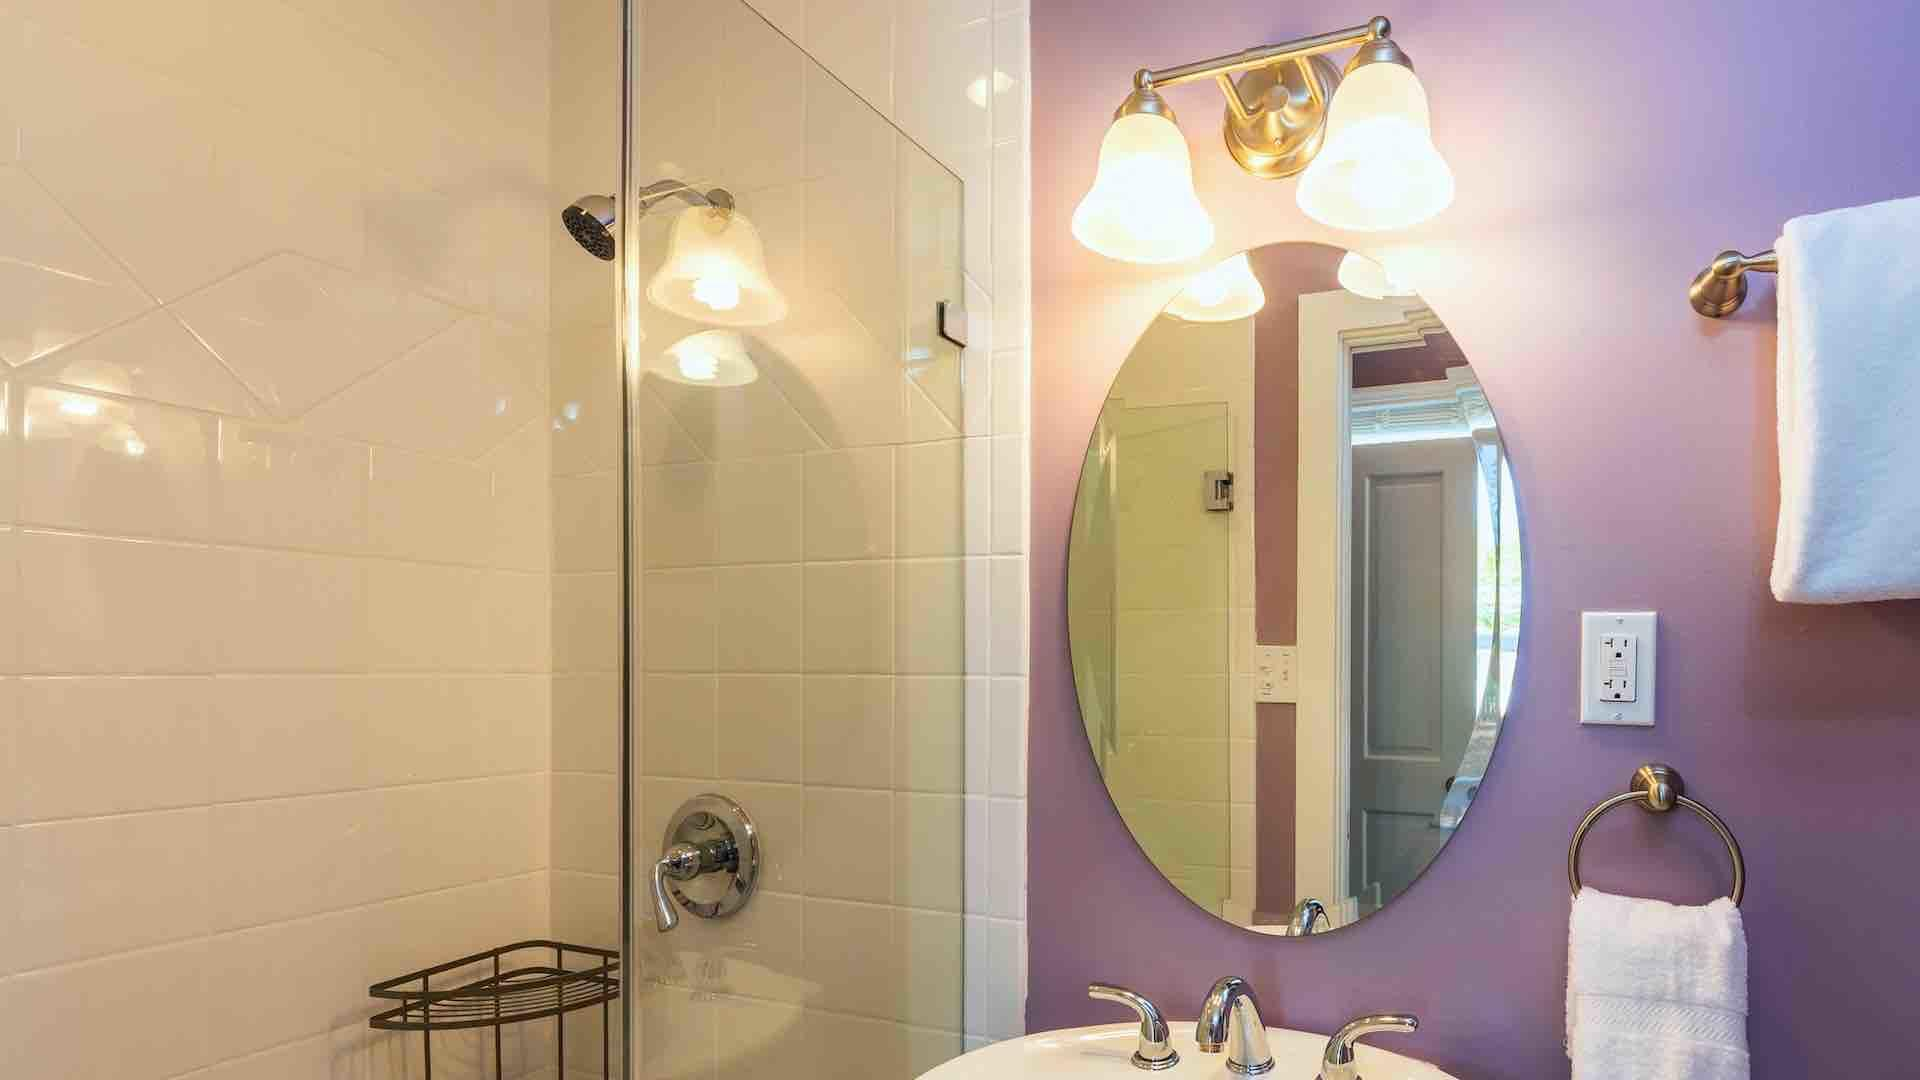 The master bathroom has a walk-in glass shower...